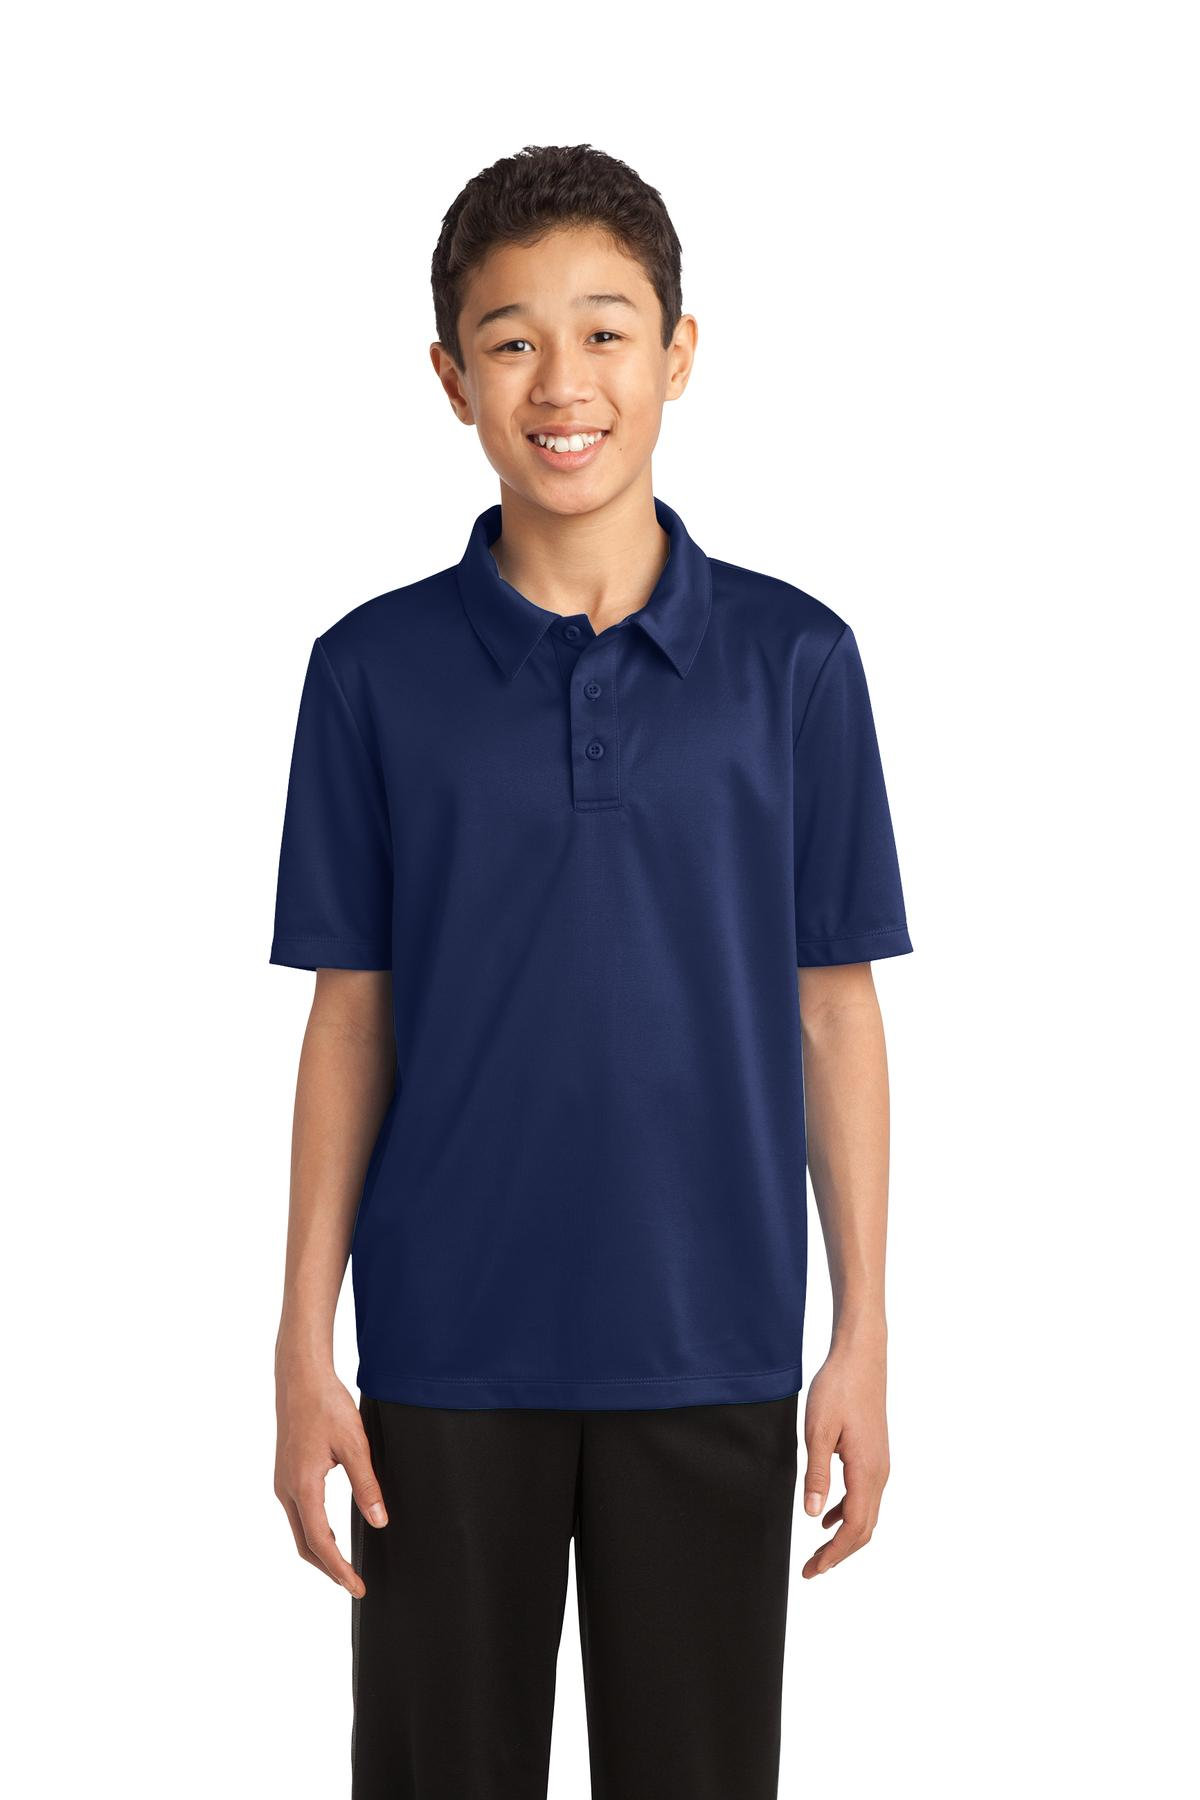 Port Authority ®  Youth Silk Touch™ Performance Polo. Y540 - Navy